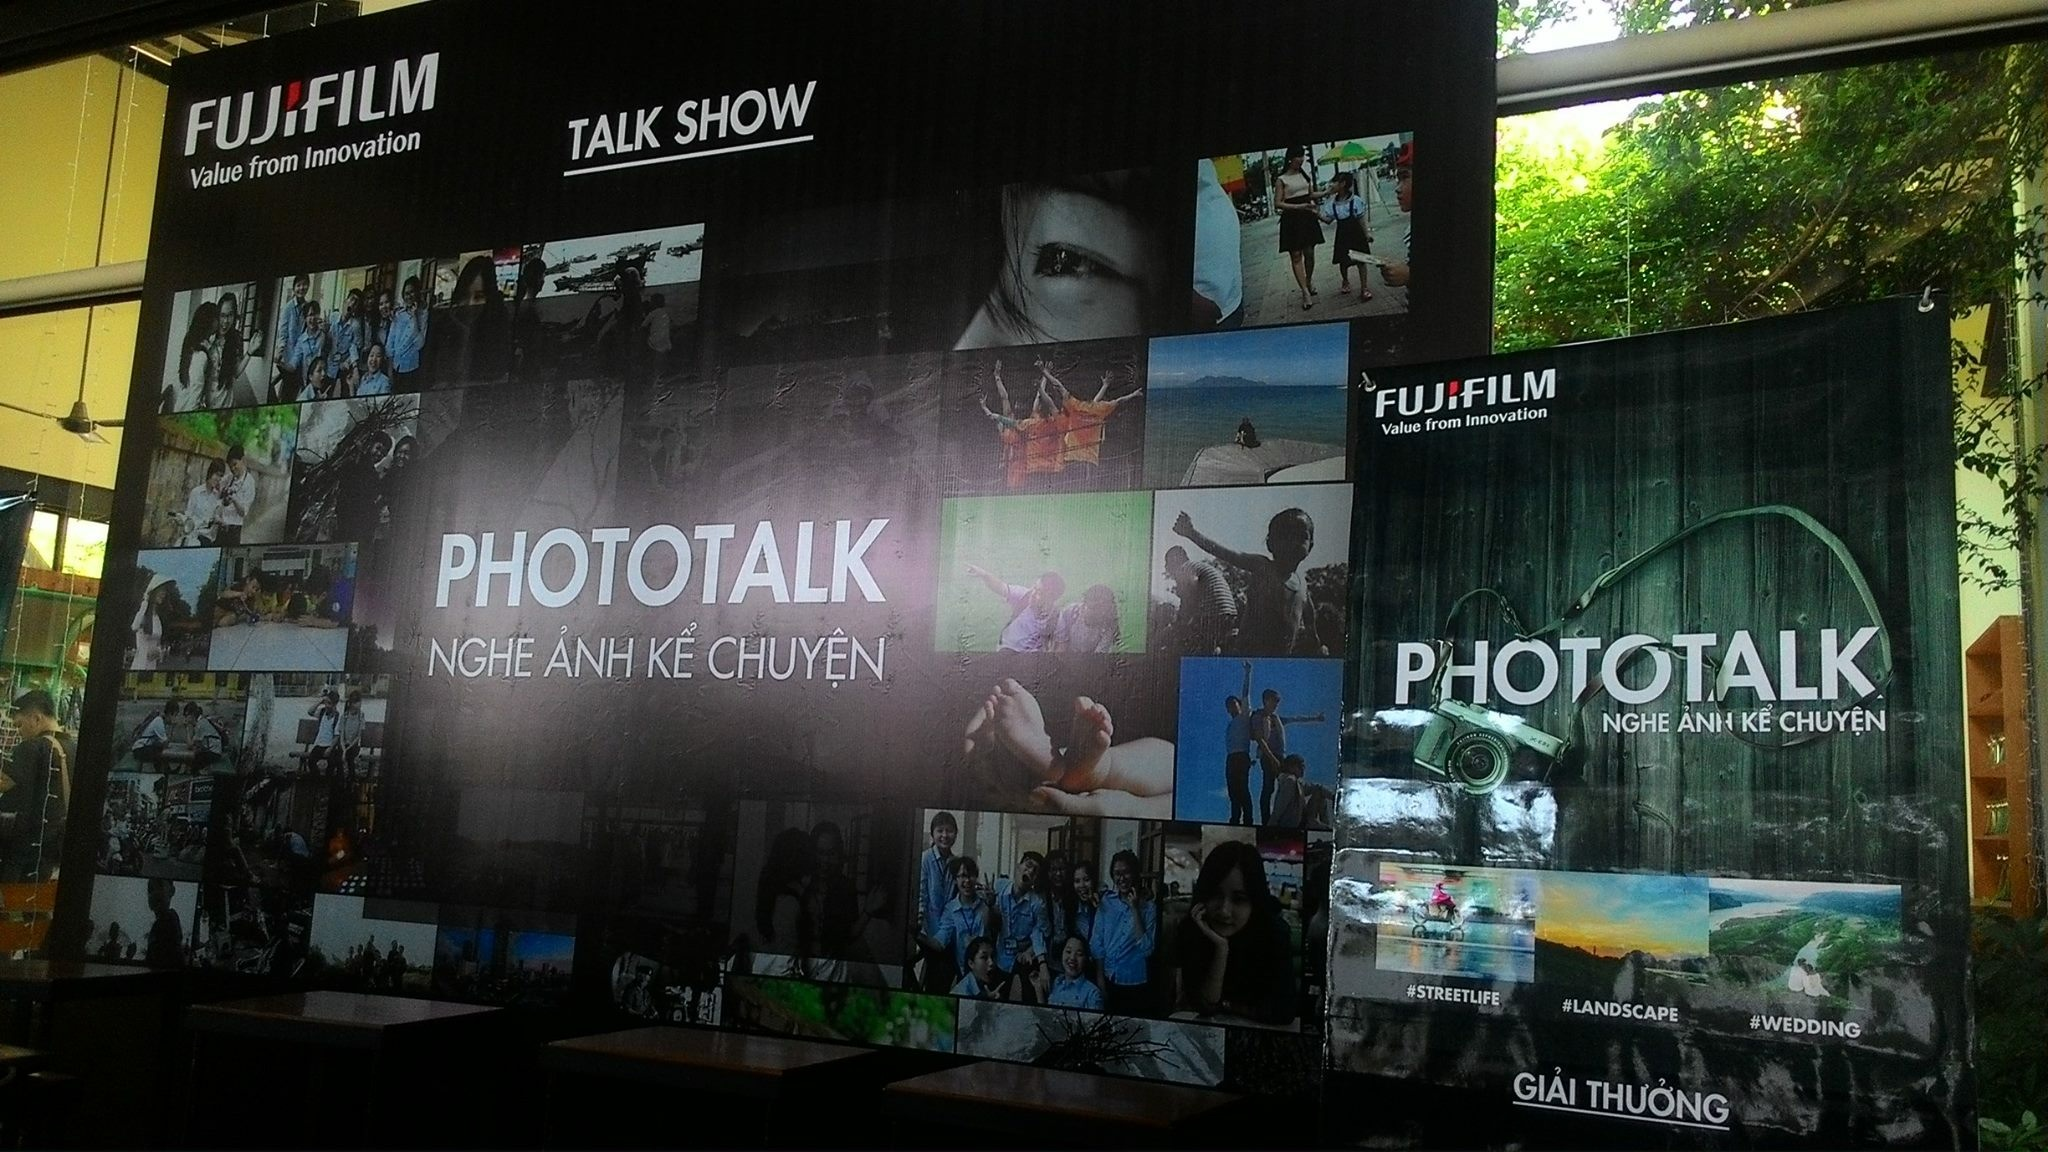 16.07.2016_Talkshow PhotoTalk do Fujifilm Camera Vietnam tổ chức (2).JPG